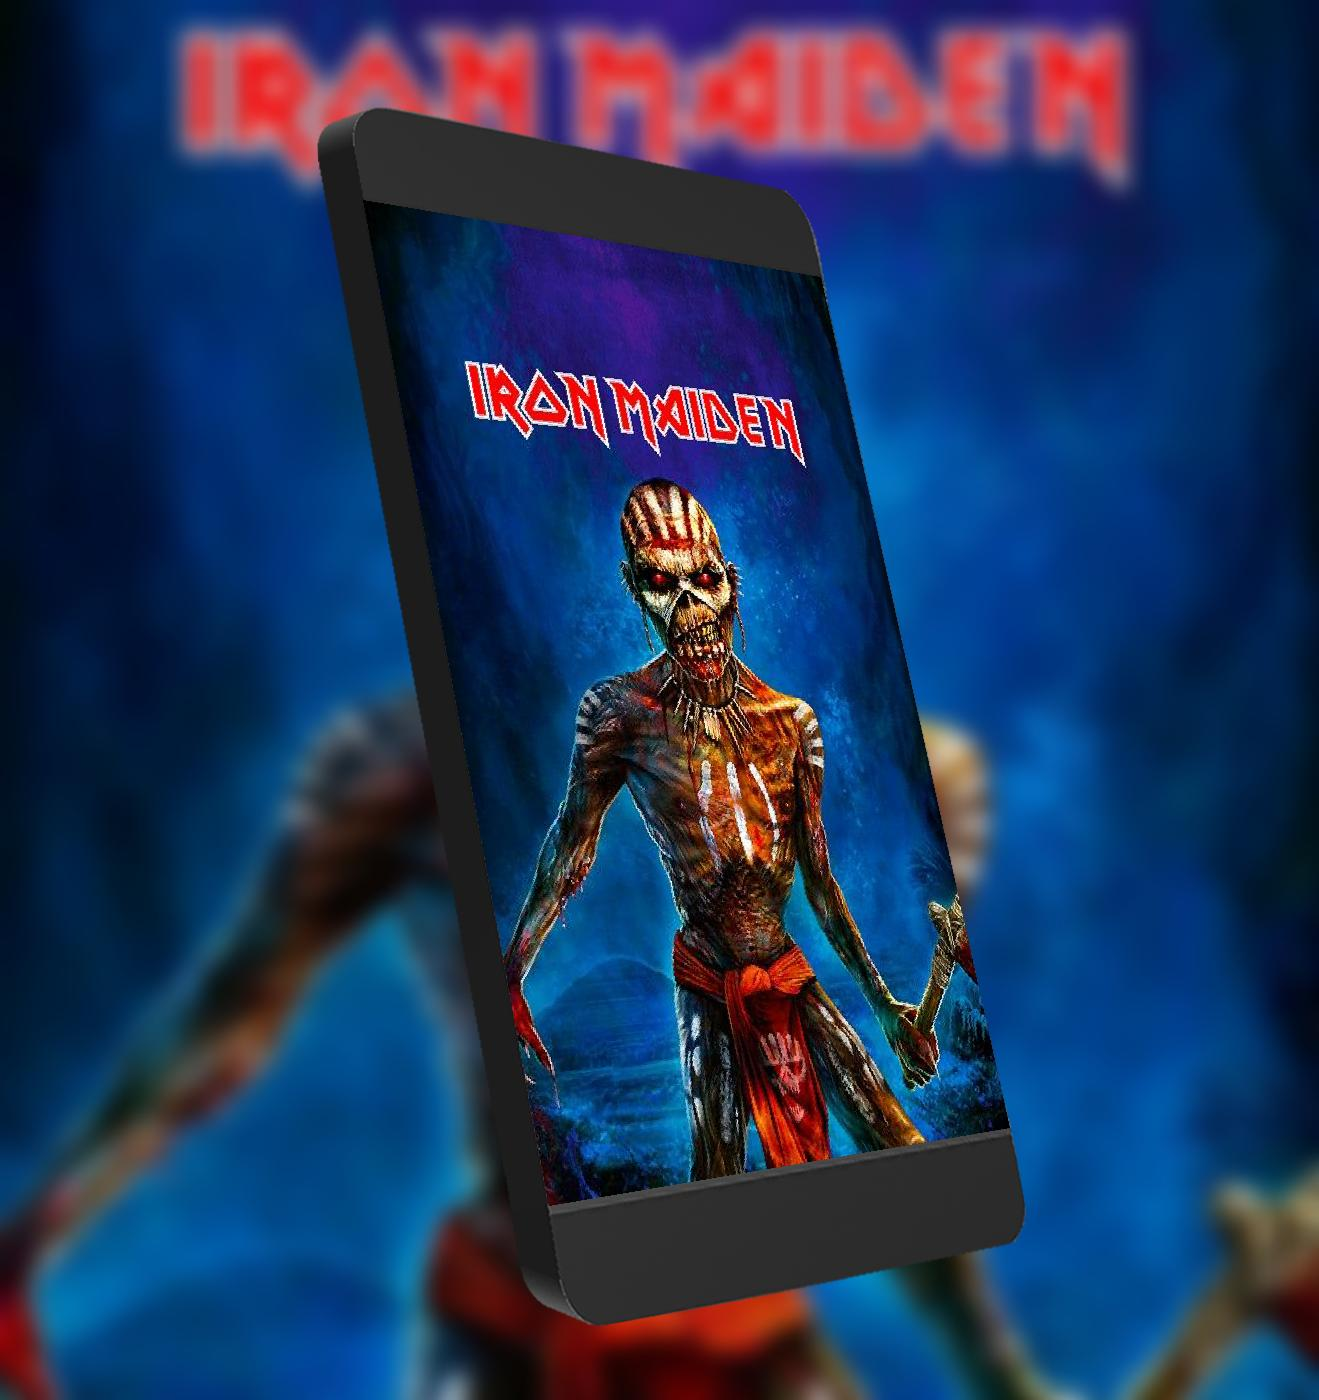 Iron Maiden Wallpaper For Android